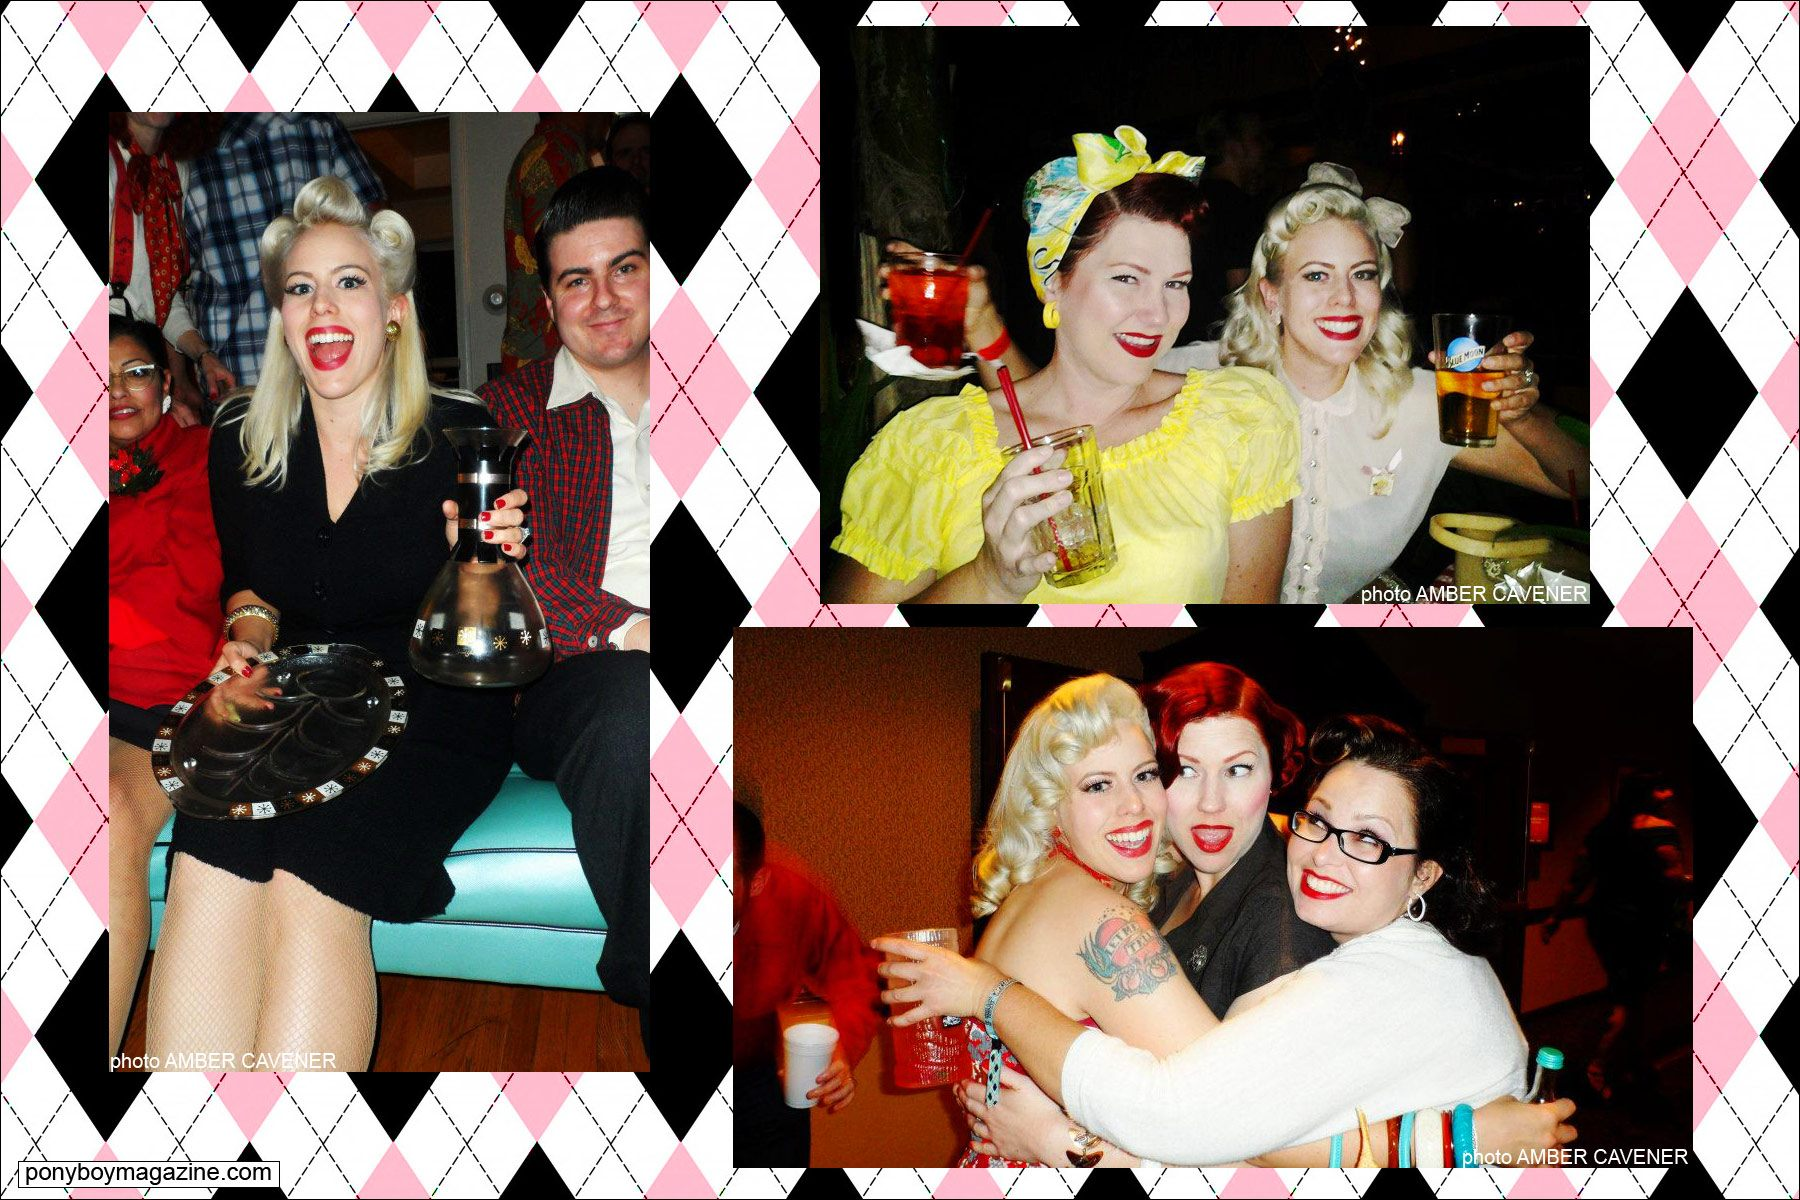 Dollie Deville, The Rockabilly Socialite, at various events with friends. Ponyboy Magazine.